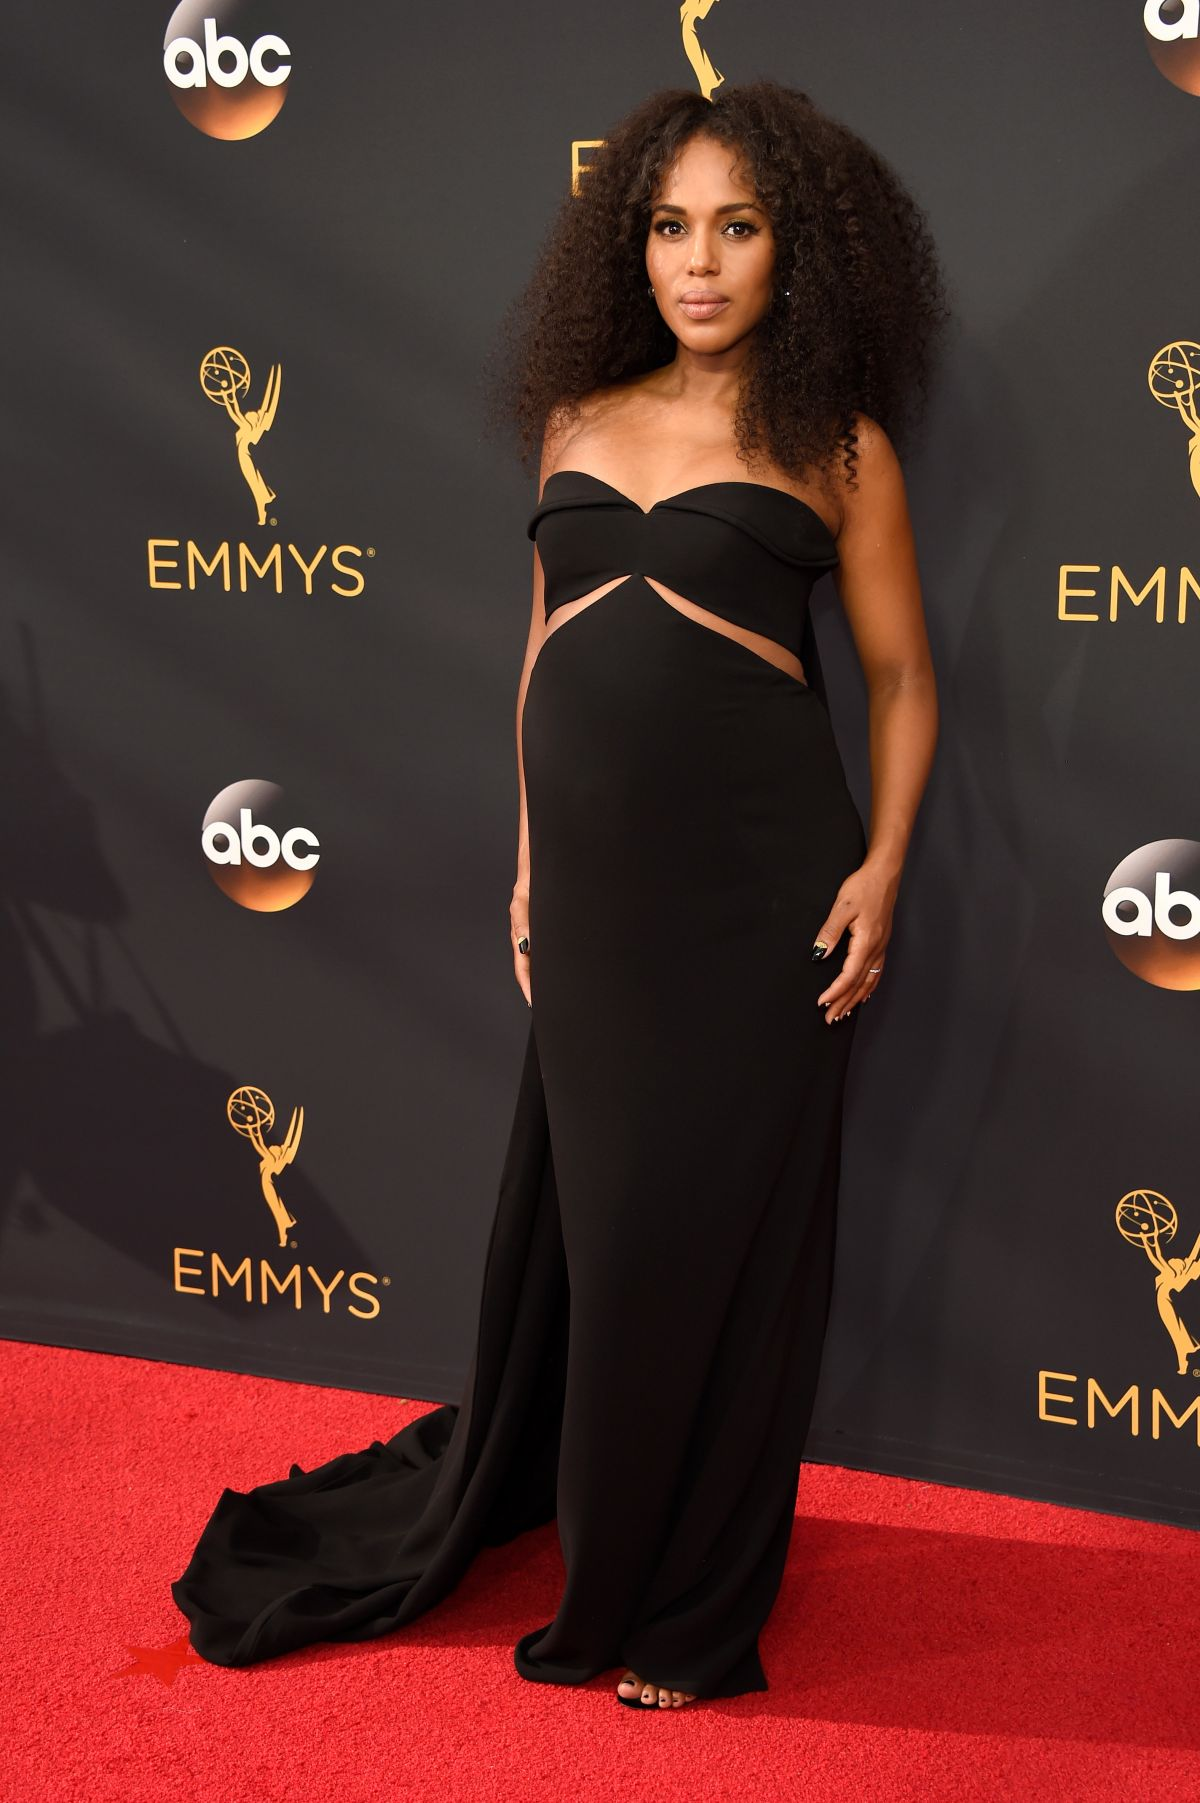 KERRY WASHINGTON at 68th Annual Primetime Emmy Awards in Los Angeles 09/18/2016